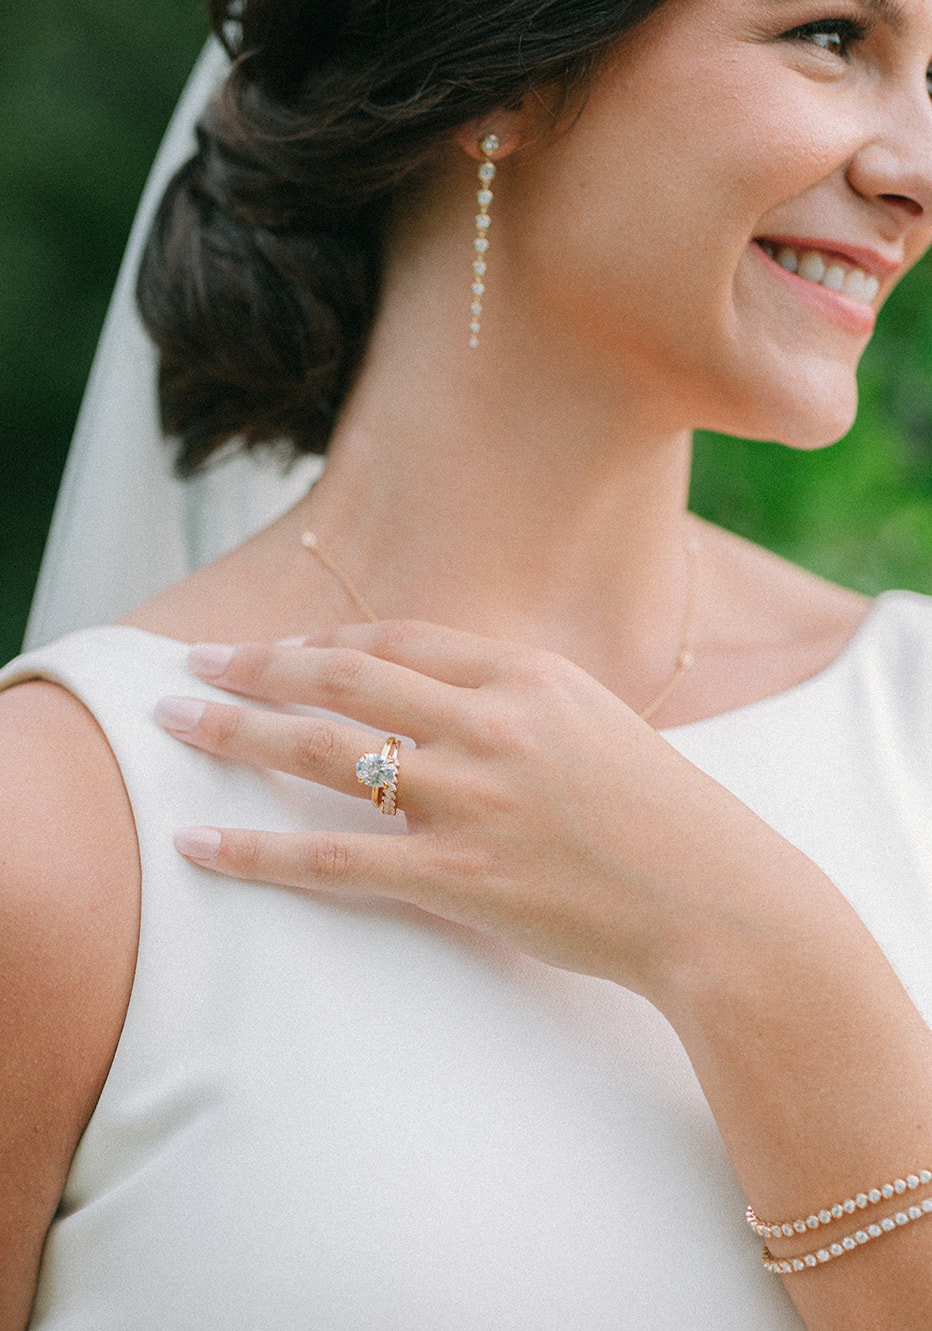 Close up of the bride's engagement ring for the southern styled shoot.